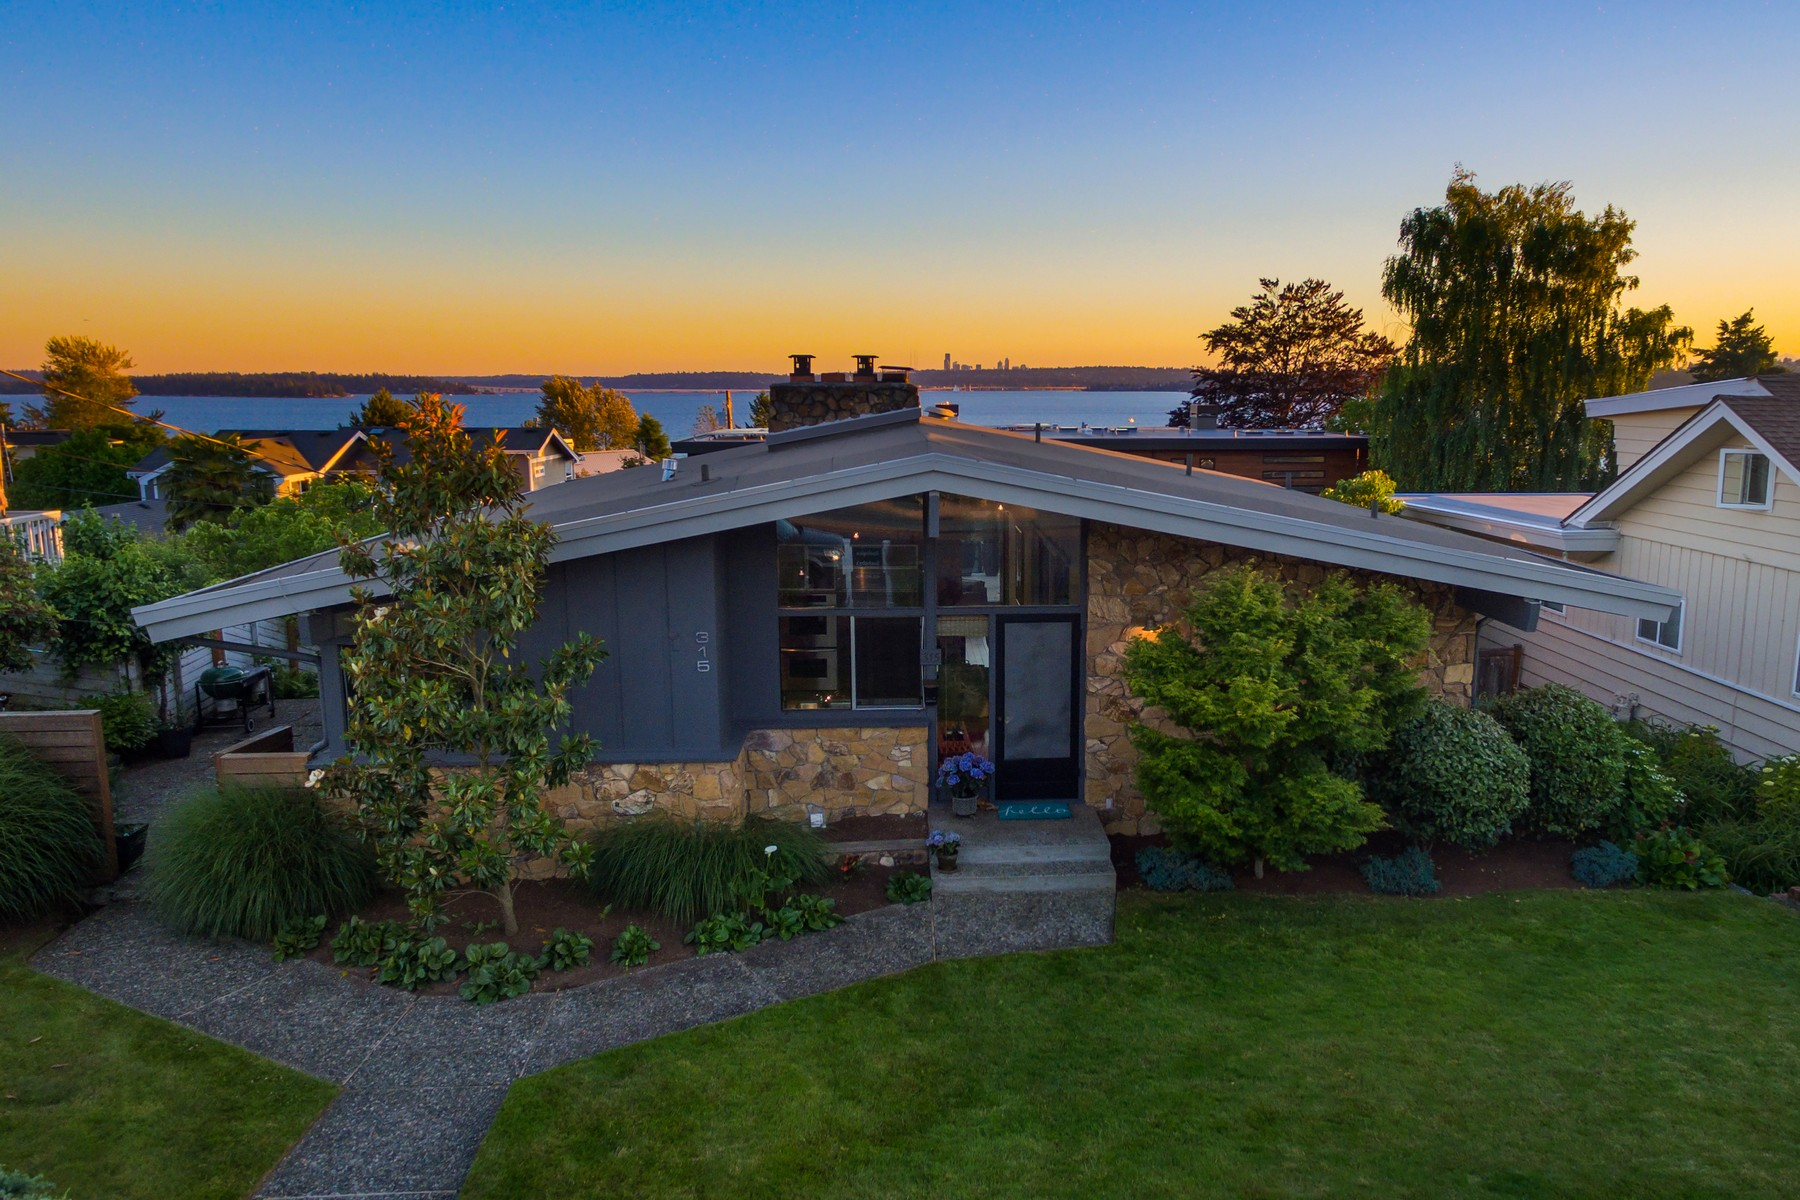 Single Family Home for Sale at Modern West of Market 315 7th Ave W Kirkland, Washington, 98033 United States